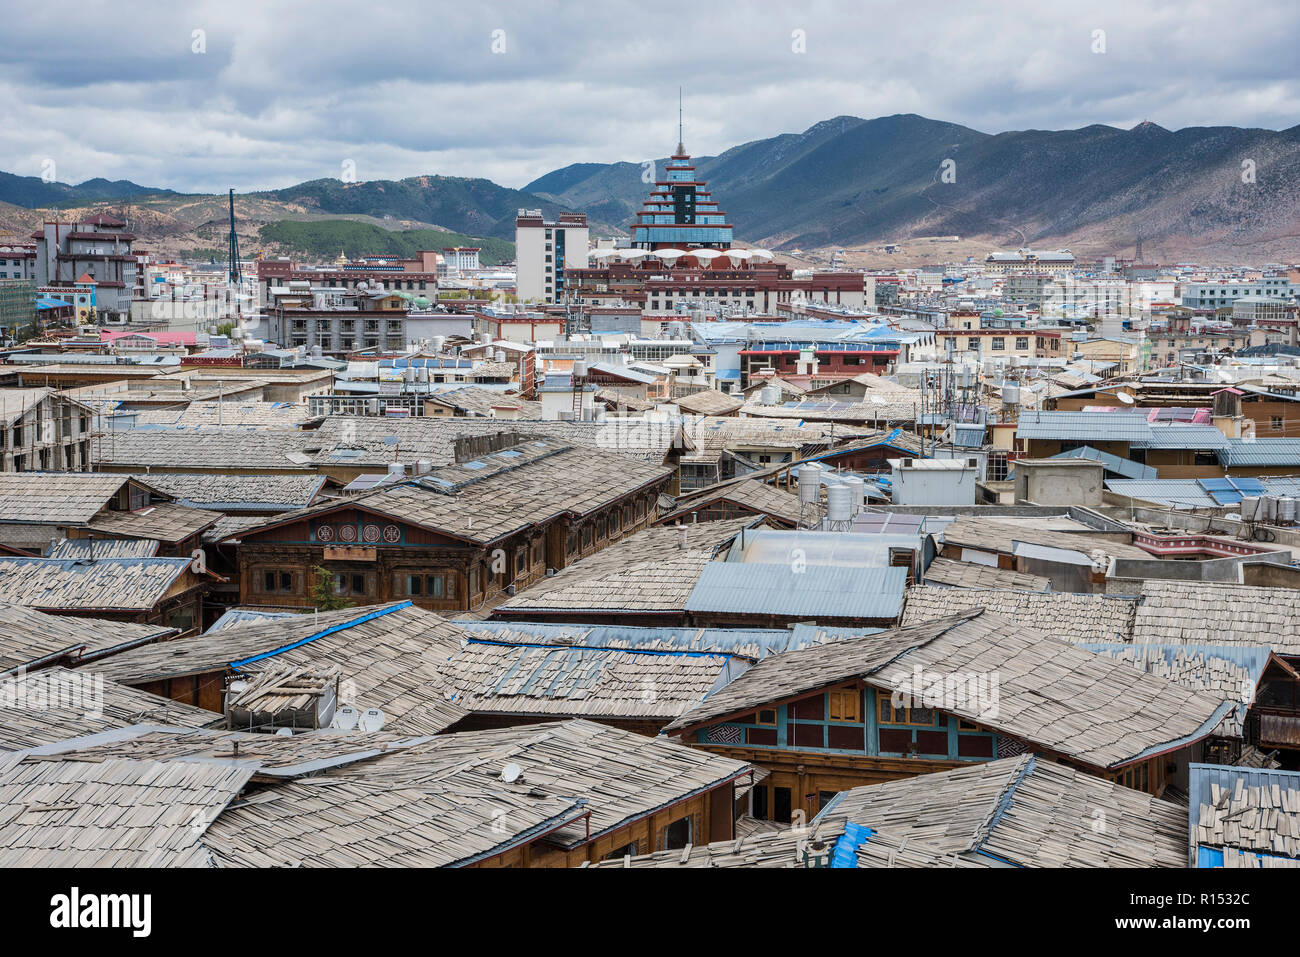 A roof top view of the ancient town of Zongdian, later renamed  Shangri- La  by the Chinese to promote tourism. China - Stock Image